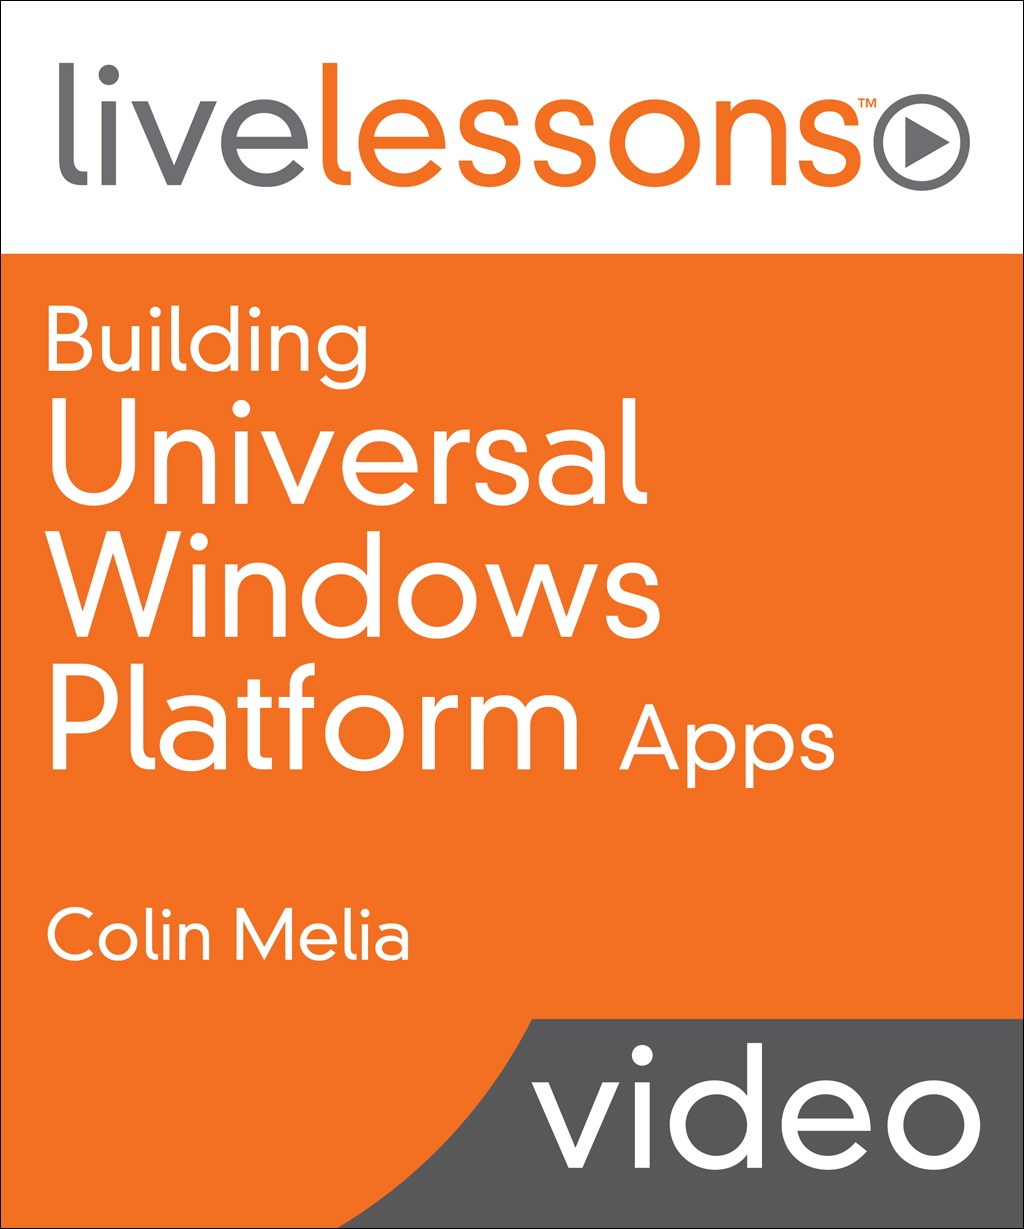 Building Universal Windows Platform Apps